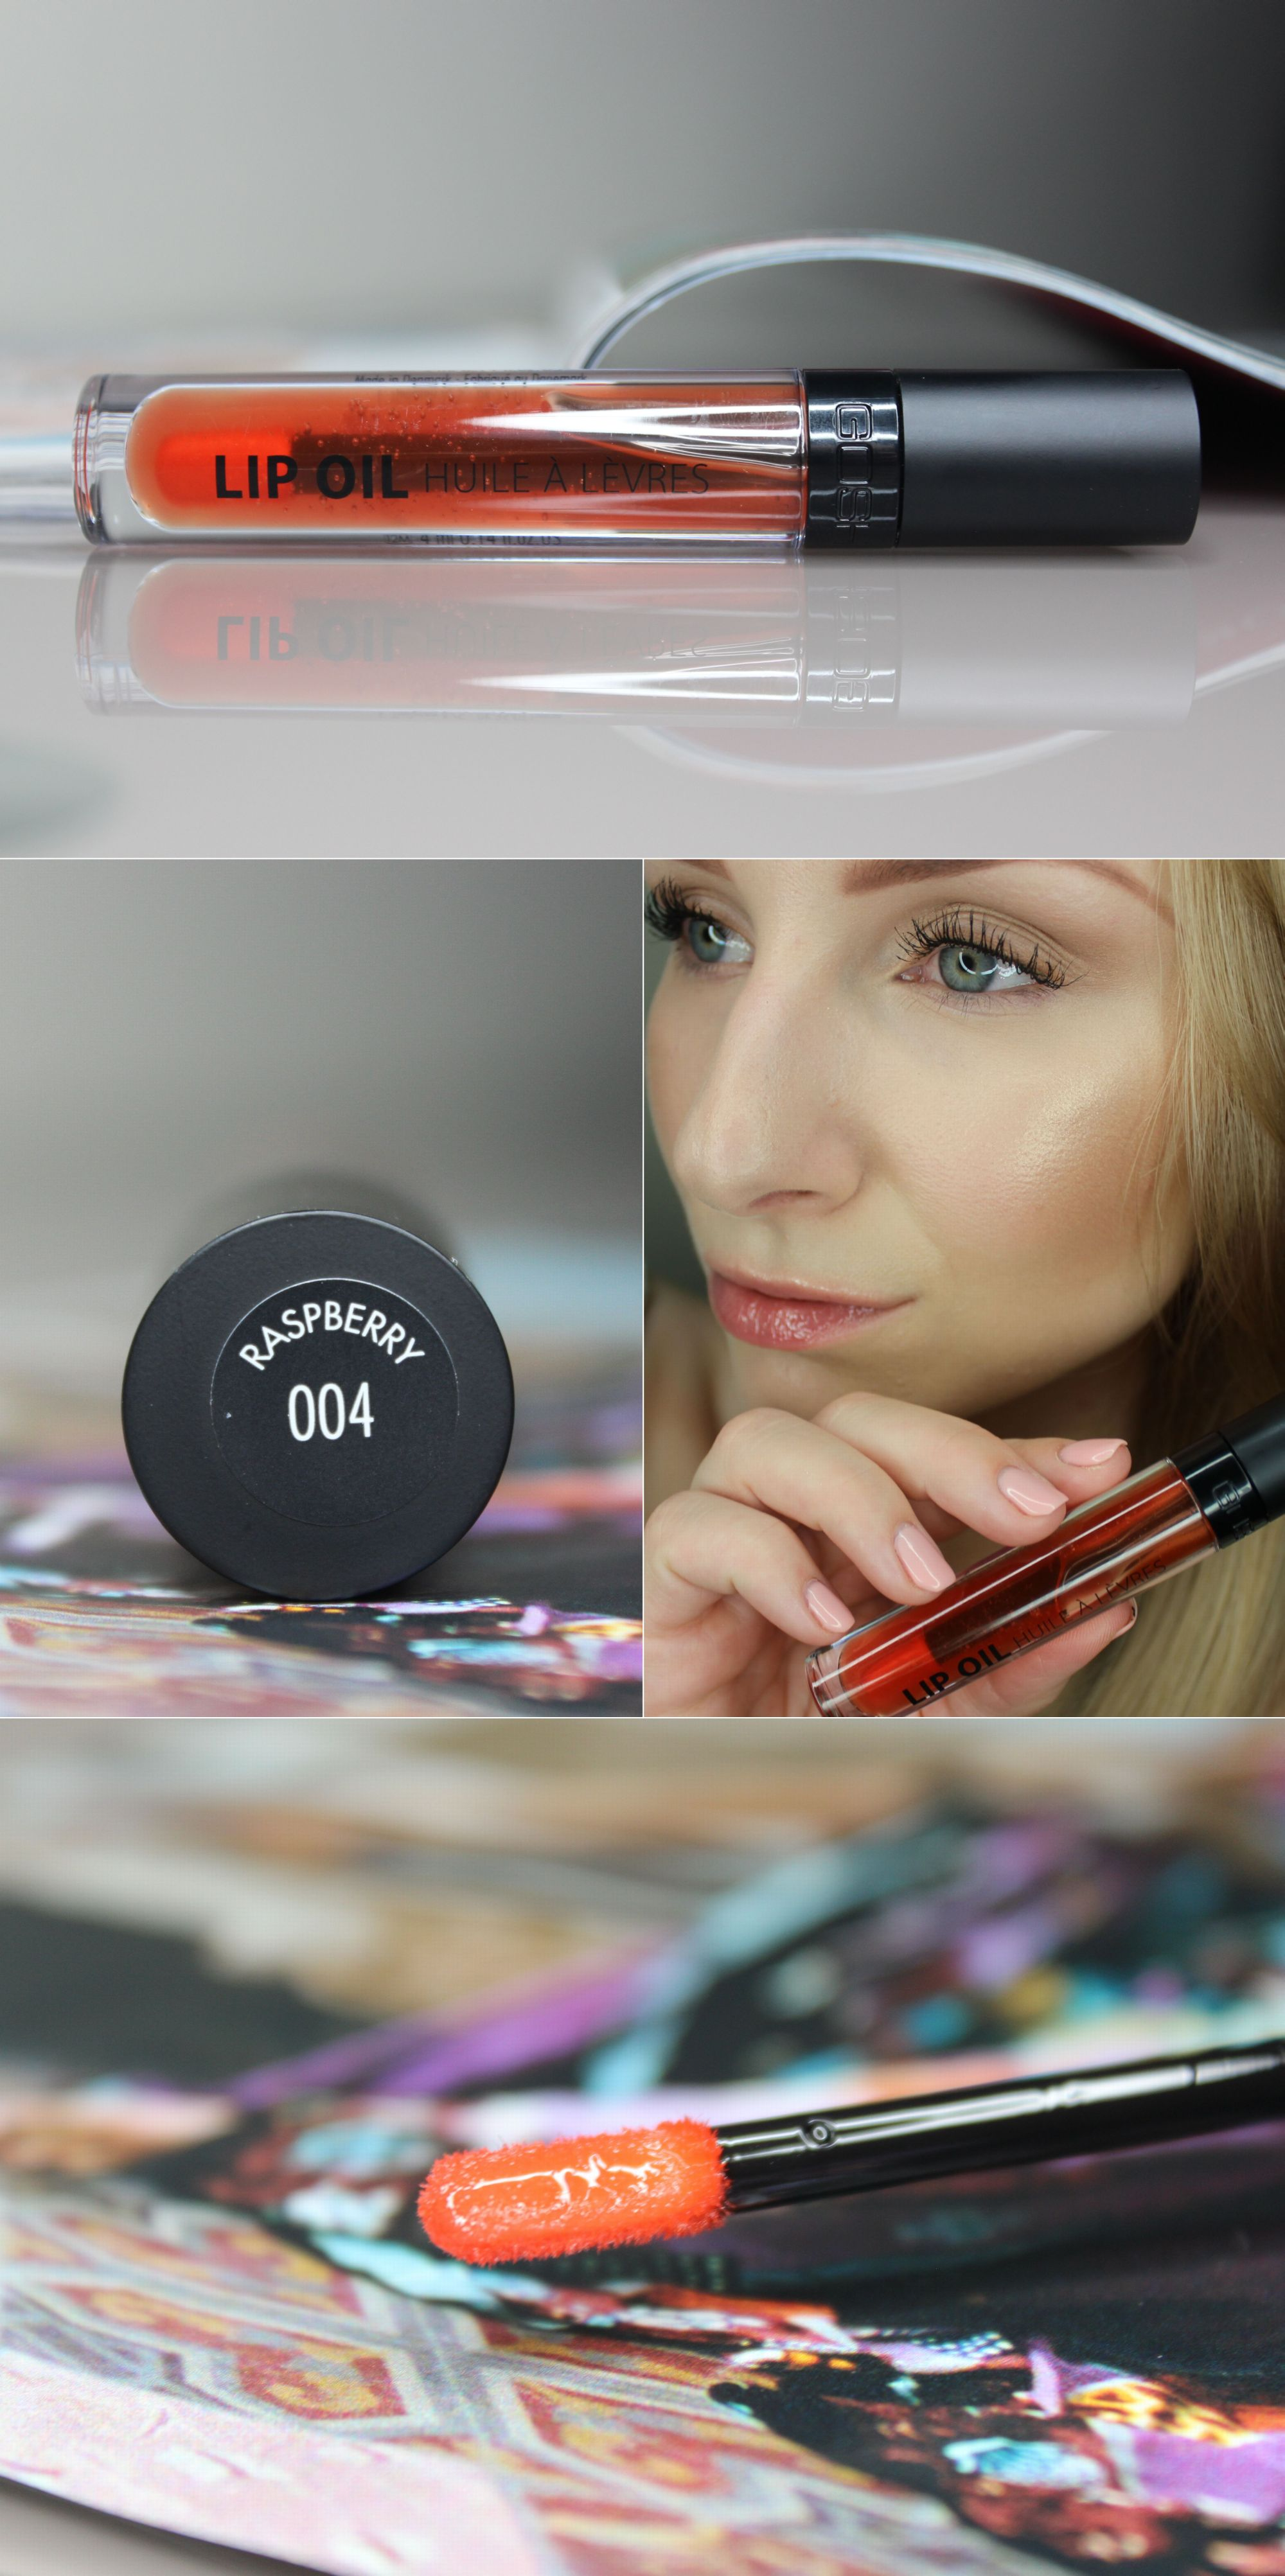 #CITY_BREAK_GOODIES GOSH Copenhagen Total Make-up 6